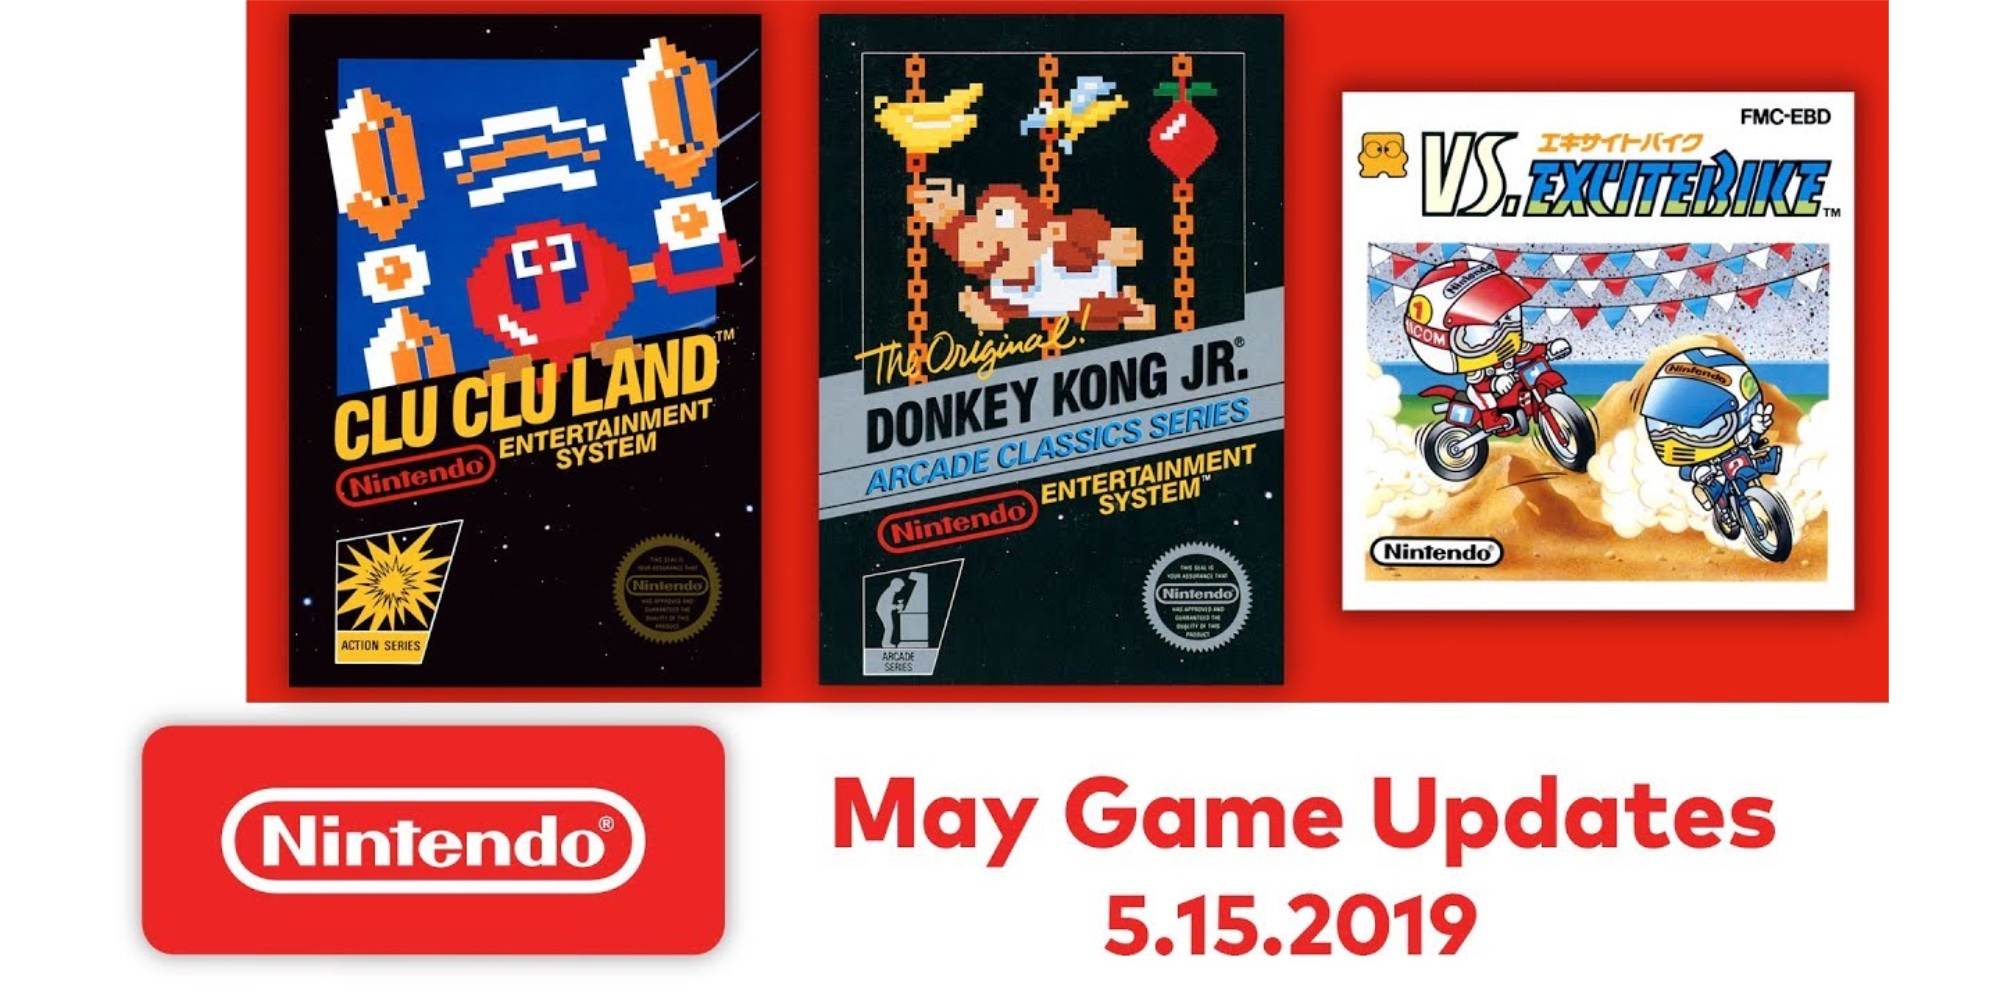 Nintendo Switch Online adds Donkey Kong Jr., VS. Excitebike and more to growing list of NES titles